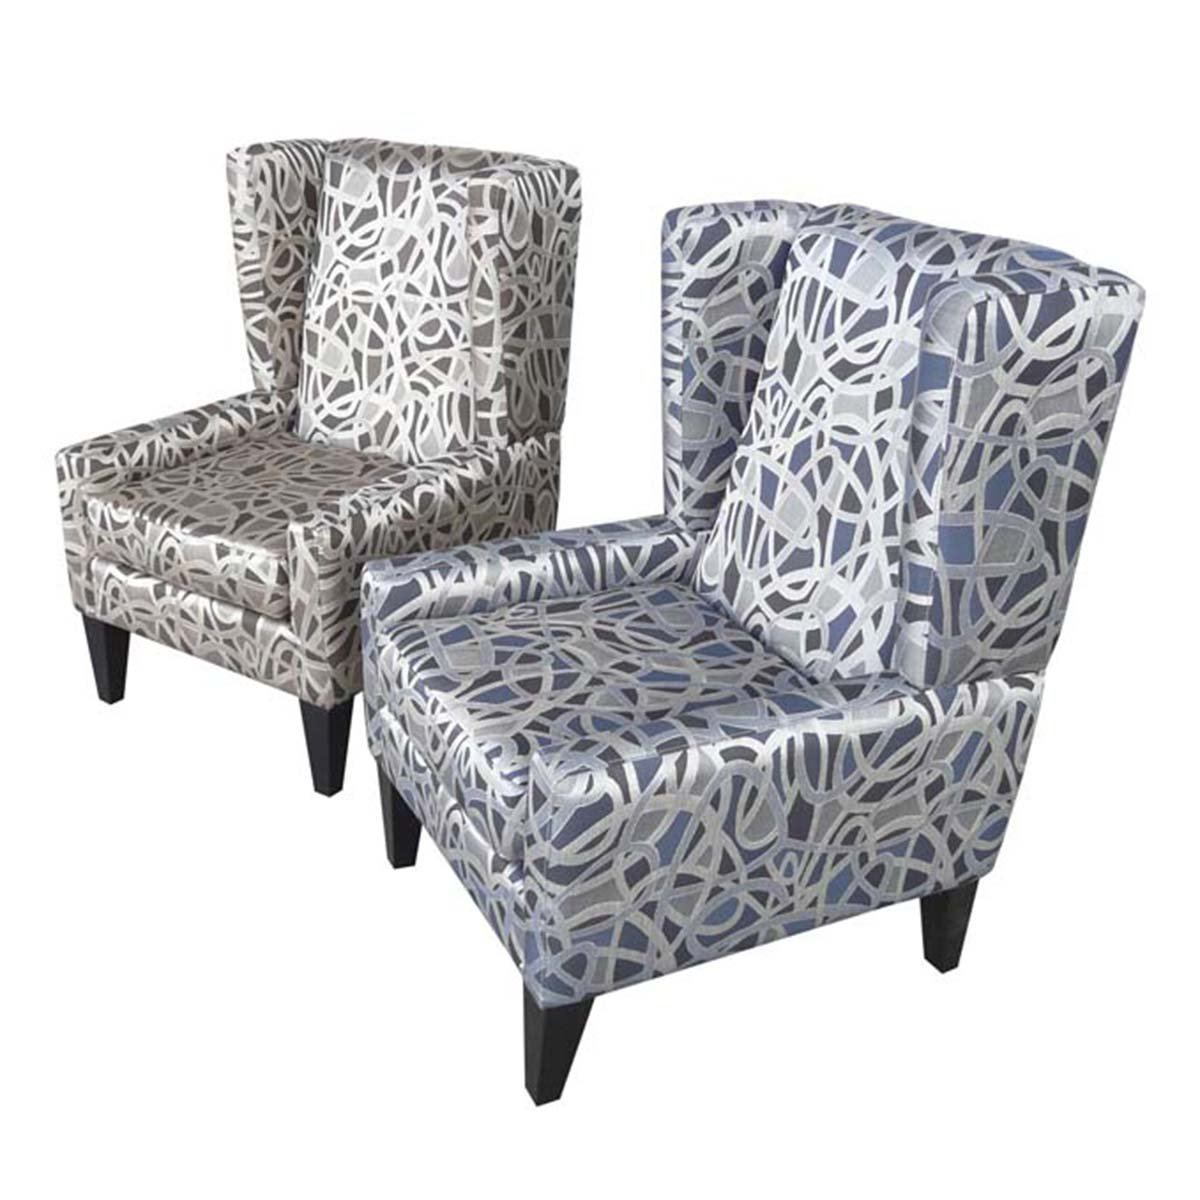 Enzo Wing Chair - Showhome Furniture